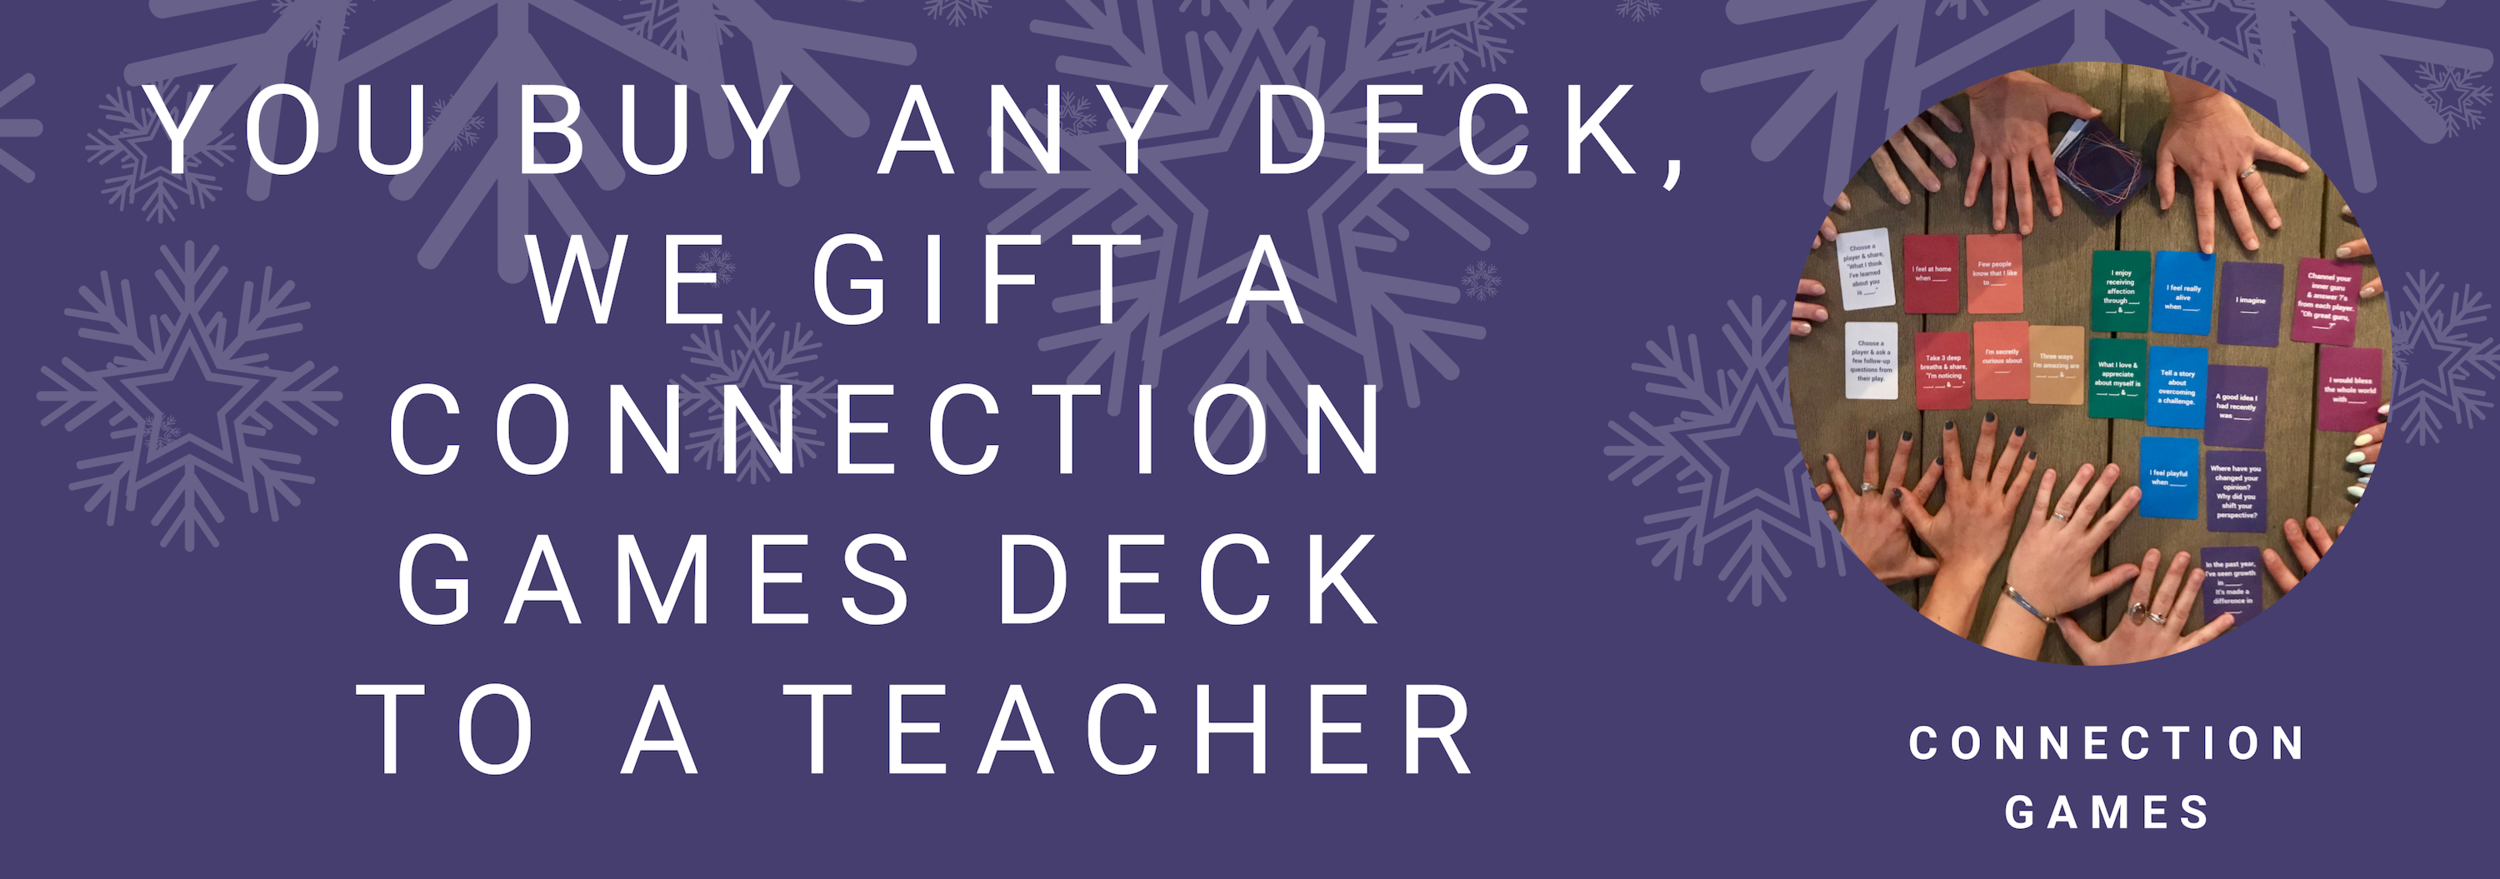 BUY A DECK, GIFT A DECK TO A TEACHER